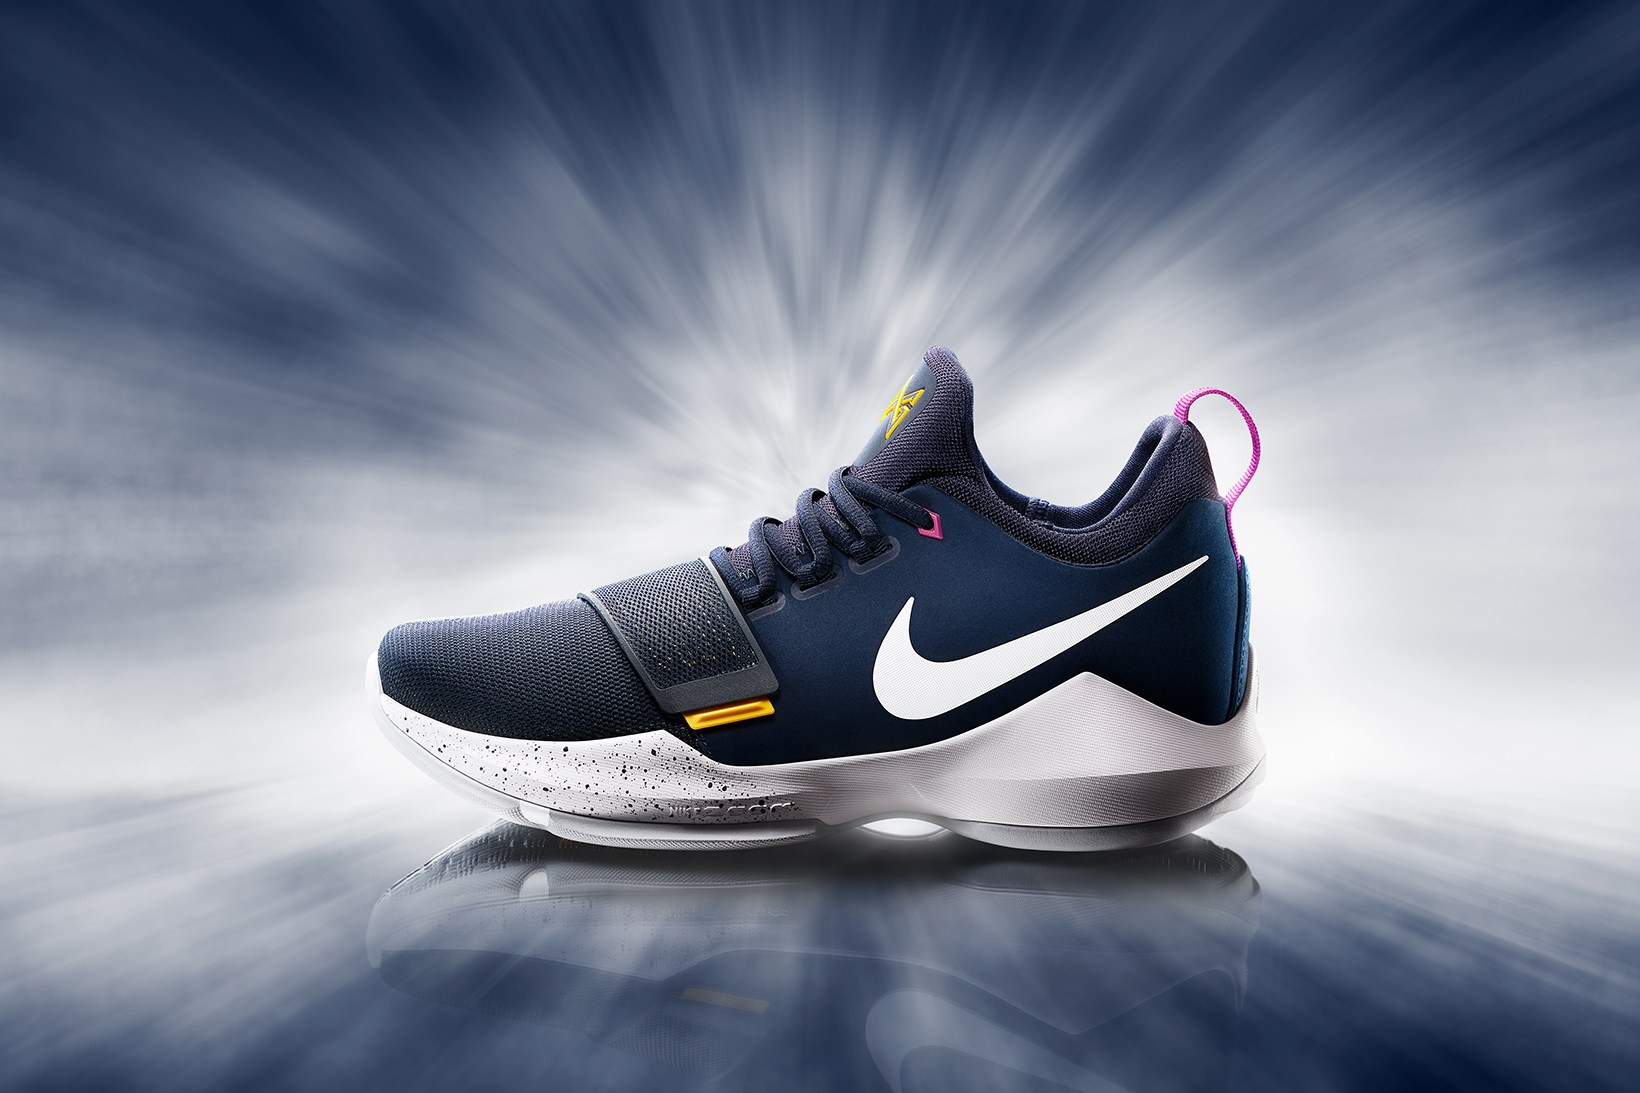 official-images-nike-pg1-1-2